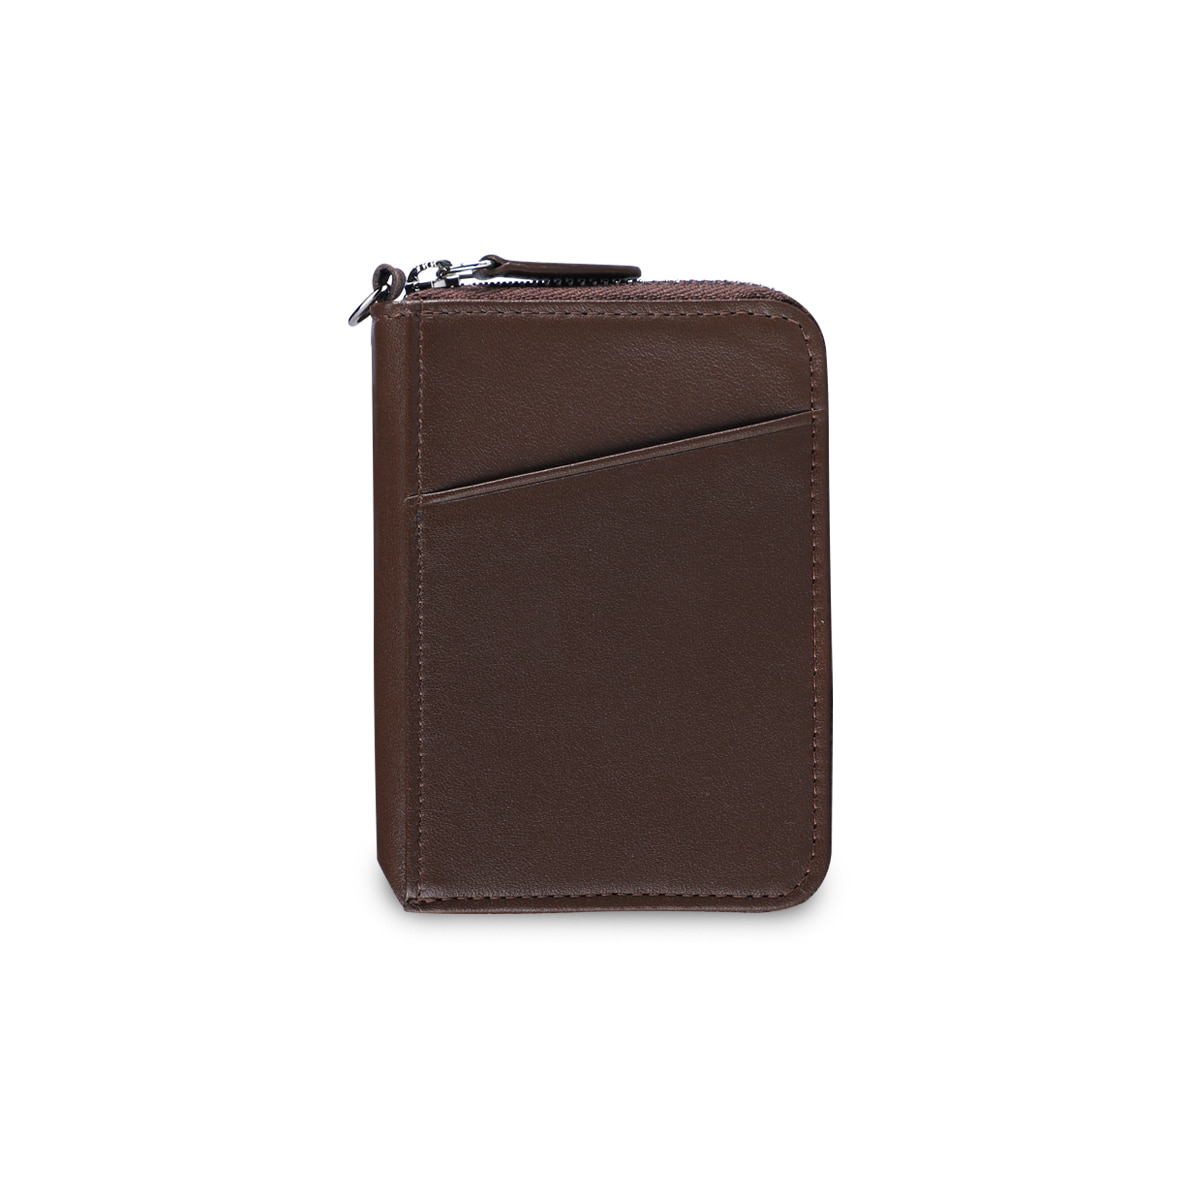 CITY ZIPPER WALLET BROWN